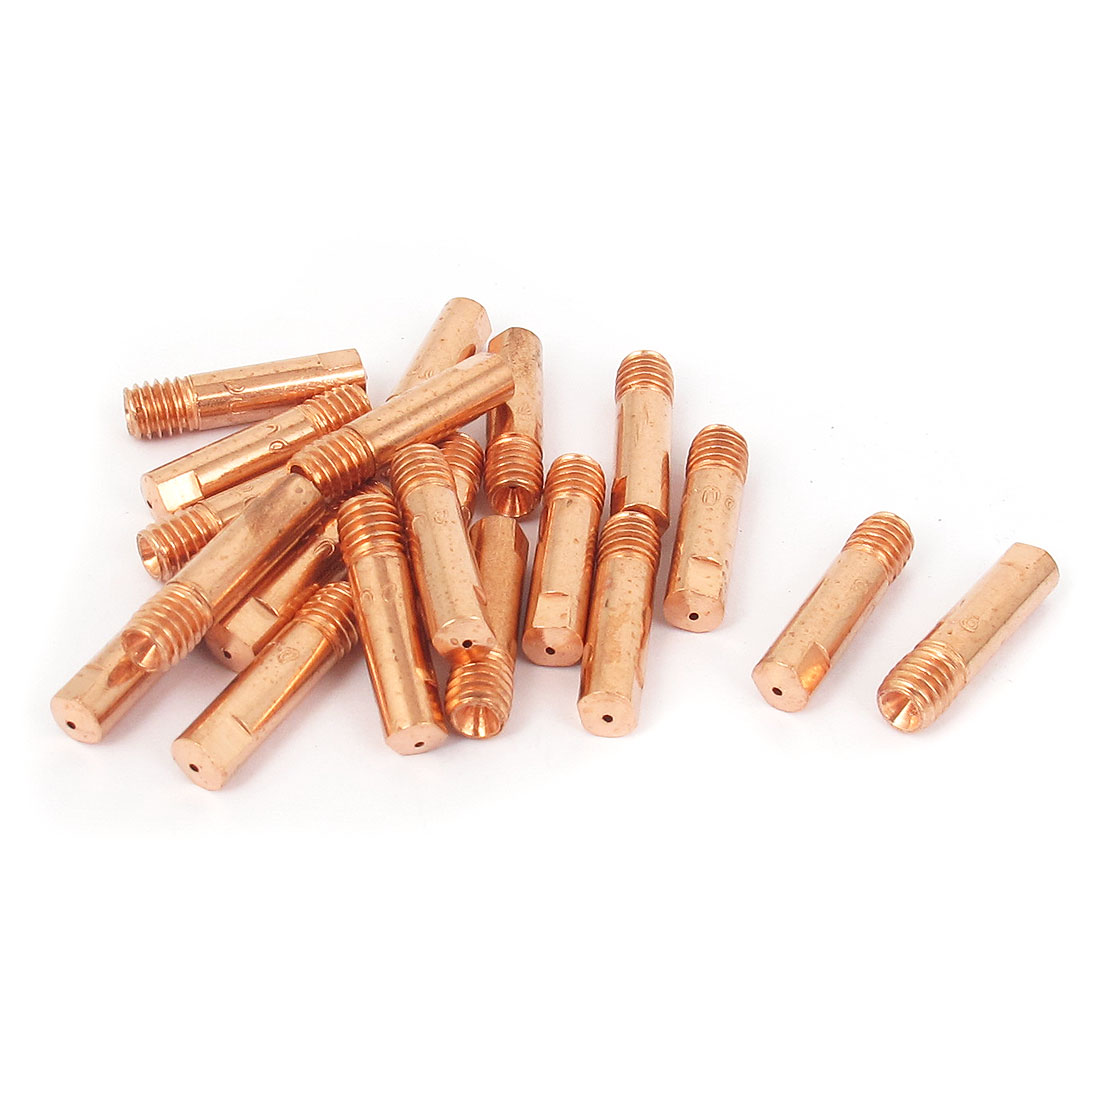 CO2 Welding Solder Torch 0.8mm Nozzle Contact Tip Head Holder Copper Tone 20pcs